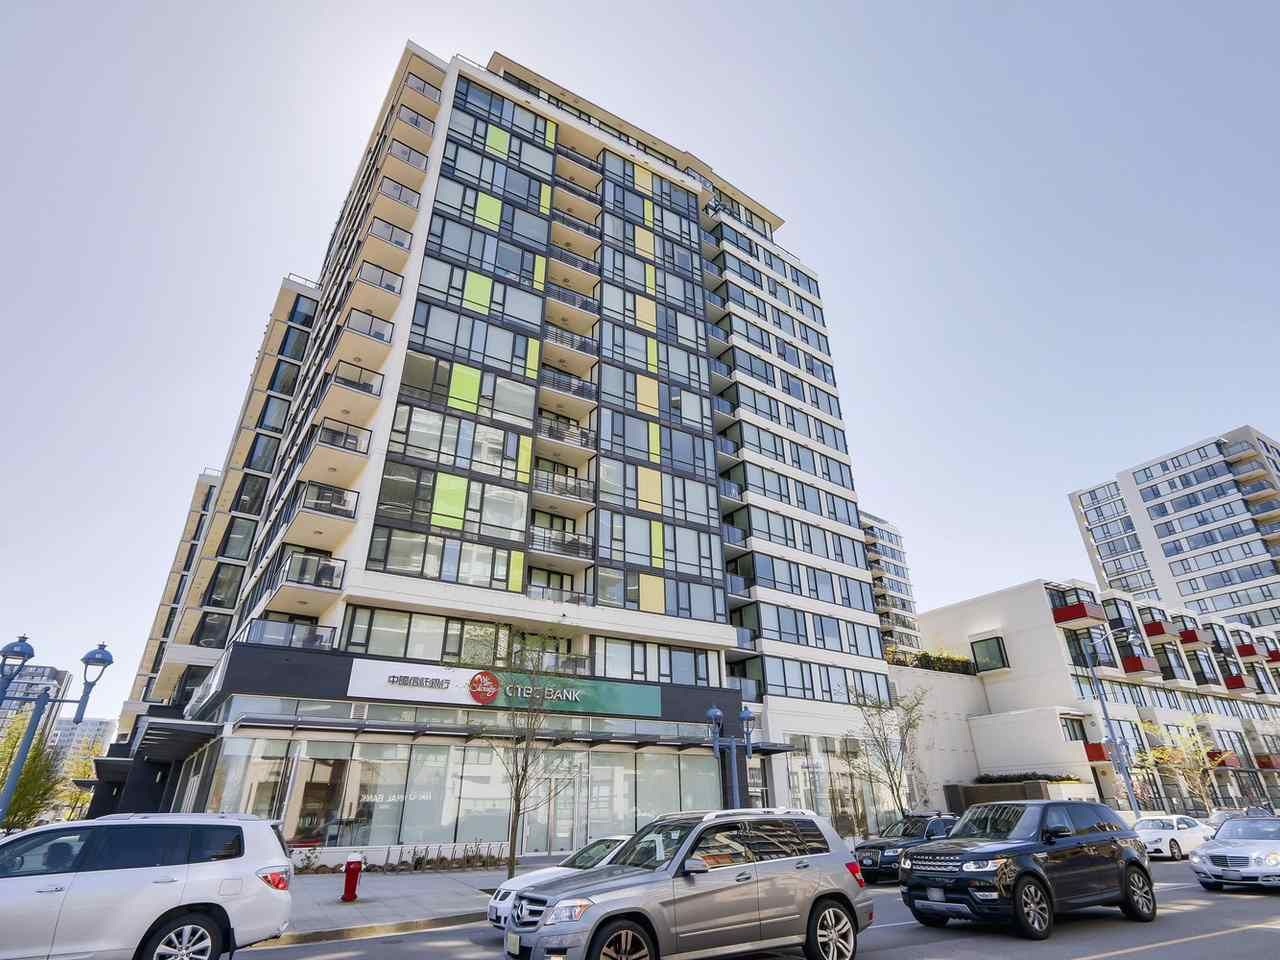 """Main Photo: 1316 7988 ACKROYD Road in Richmond: Brighouse Condo for sale in """"QUINTET"""" : MLS®# R2159738"""